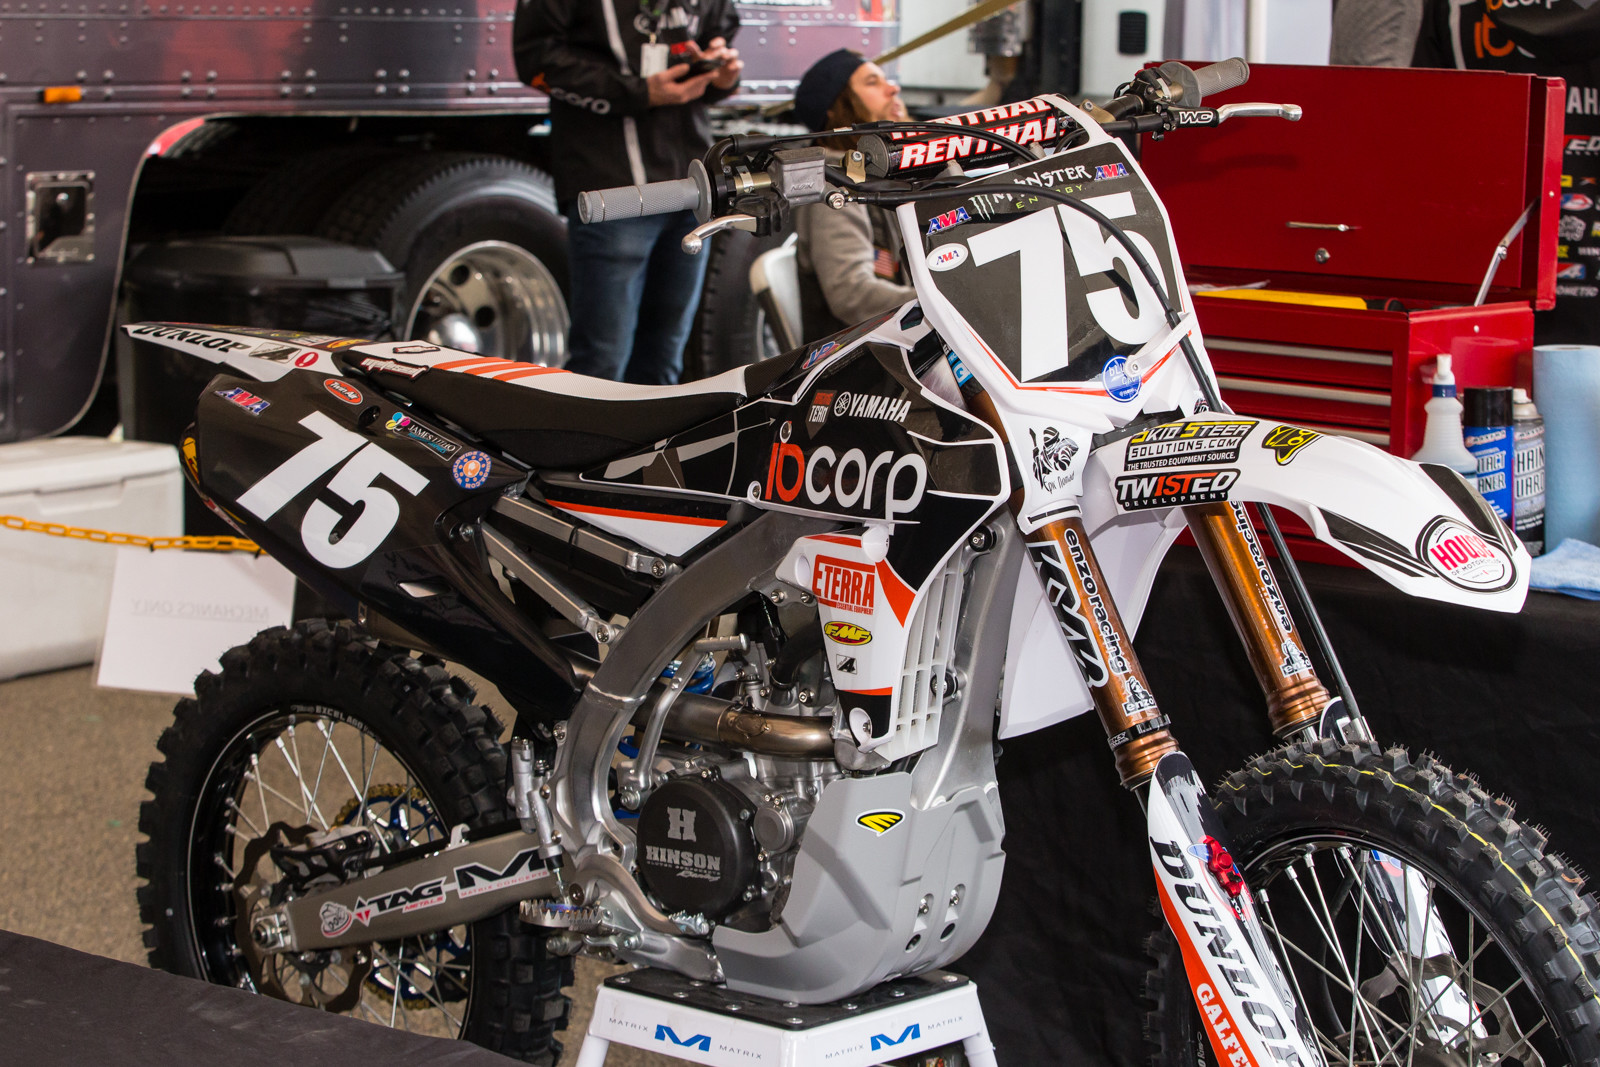 RaceTrack Supercross Contest runner-up, Noah McConahy, has been added on...congrats Noah!